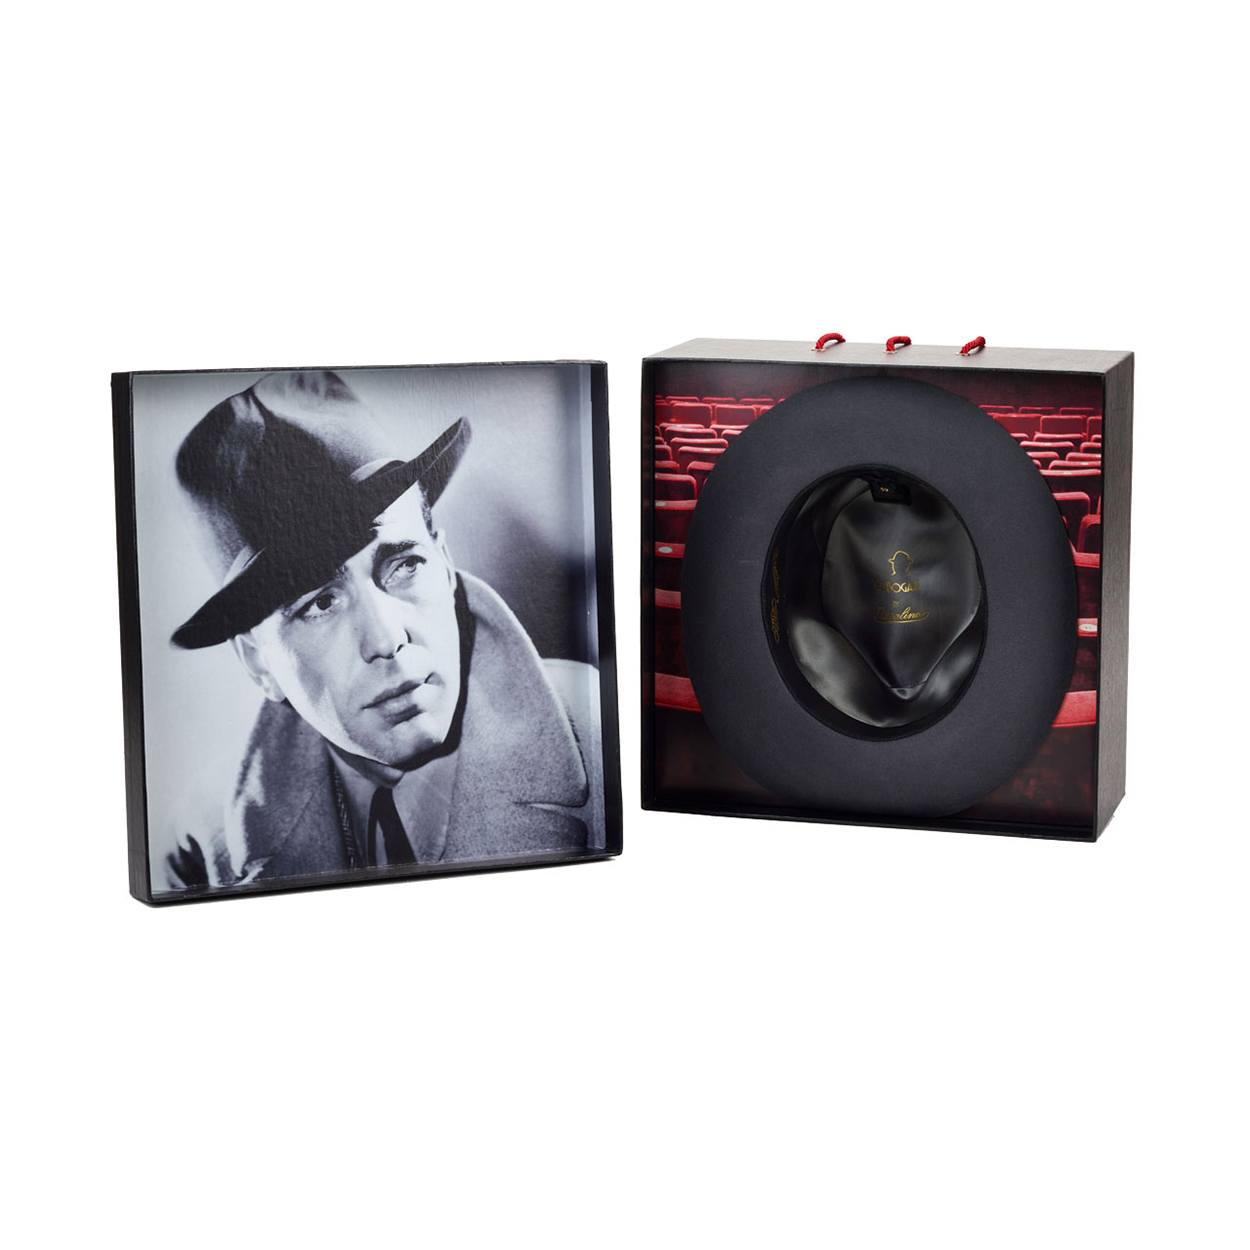 The-bogart-by-borsalino-cut-01_0000s_0000_The-Bogart-by-Borsalino_Cut-1-hat-box.jpg